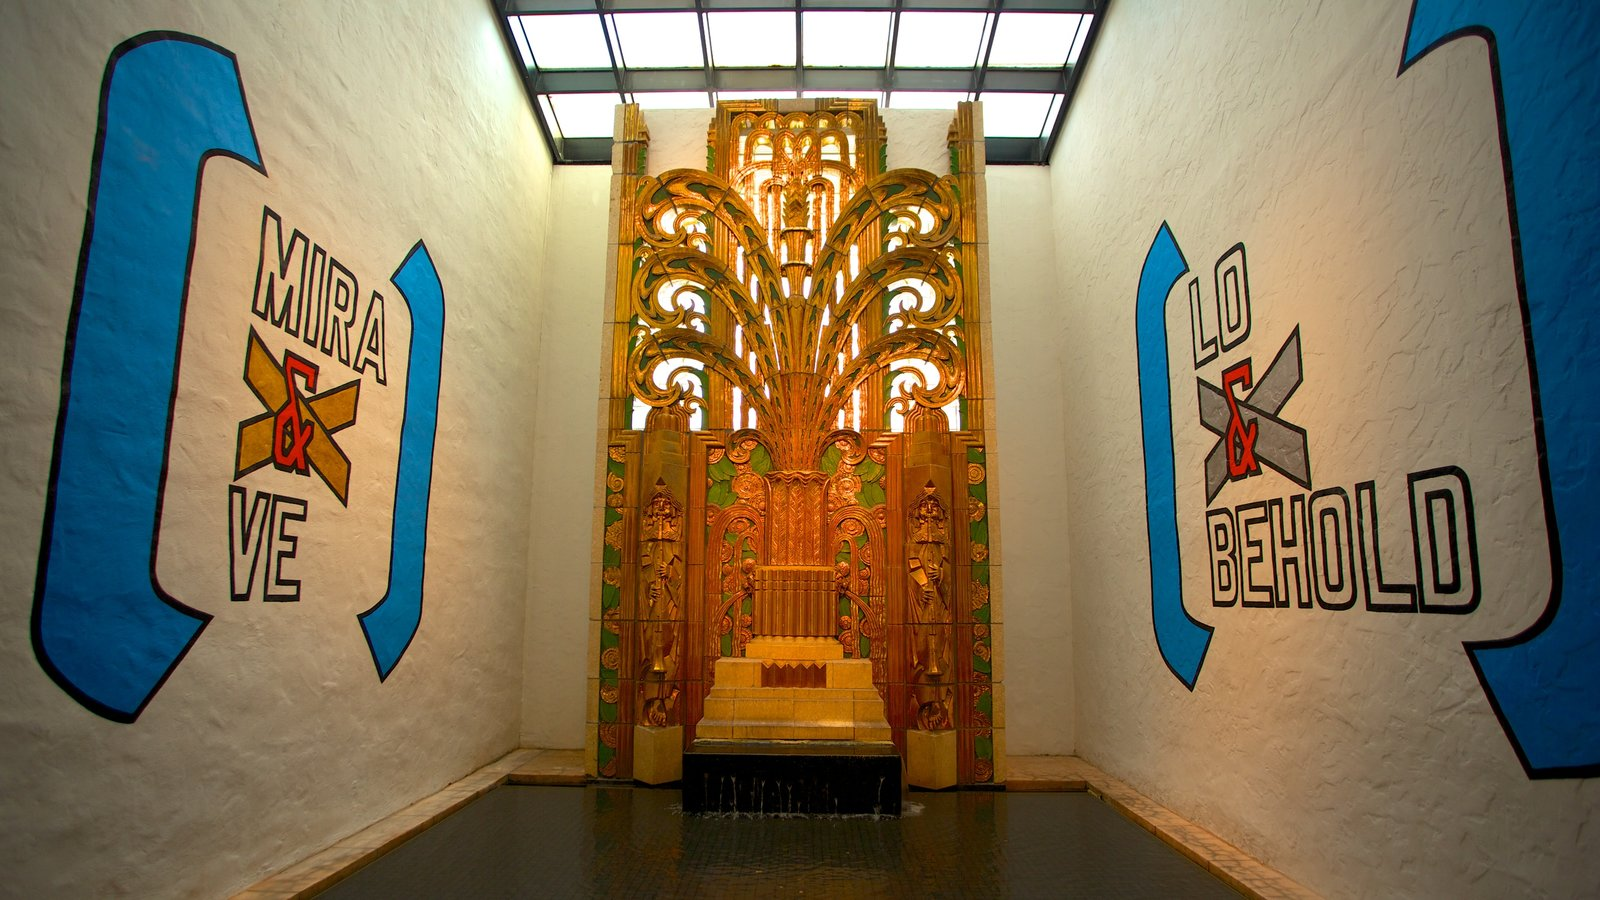 The Wolfsonian Museum featuring interior views and signage